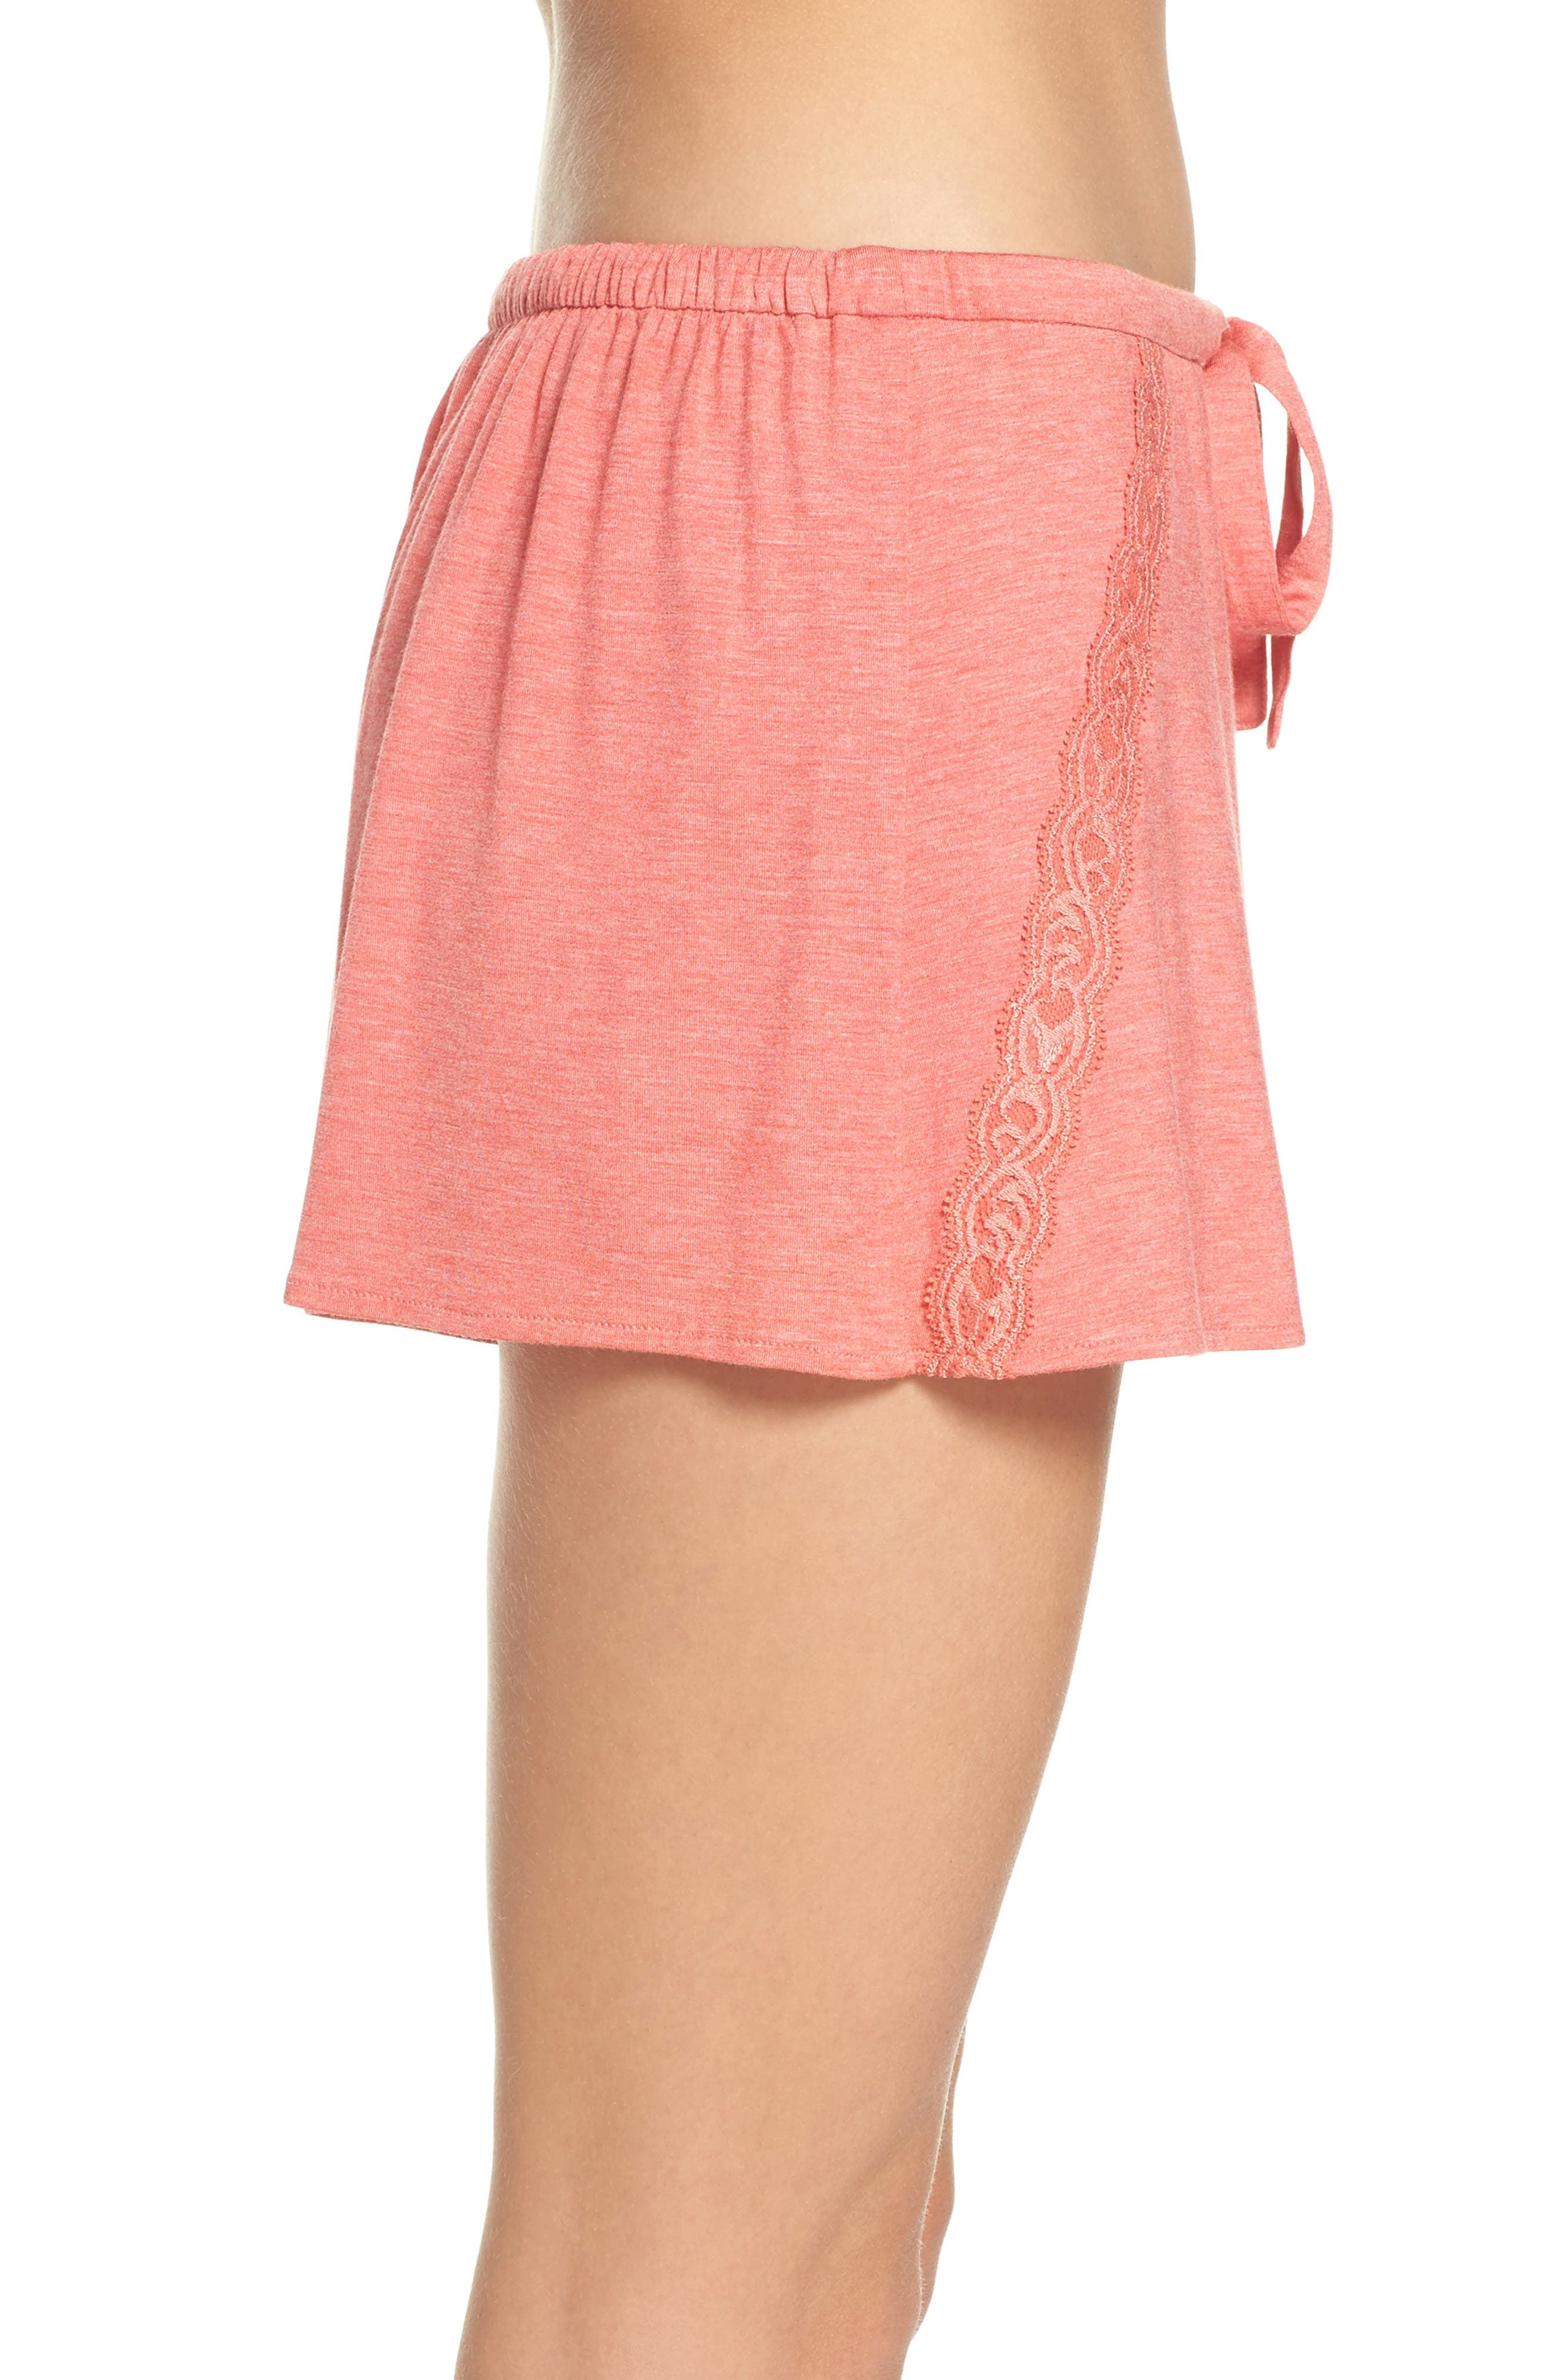 Feathers Essential Pajama Shorts,                             Alternate thumbnail 6, color,